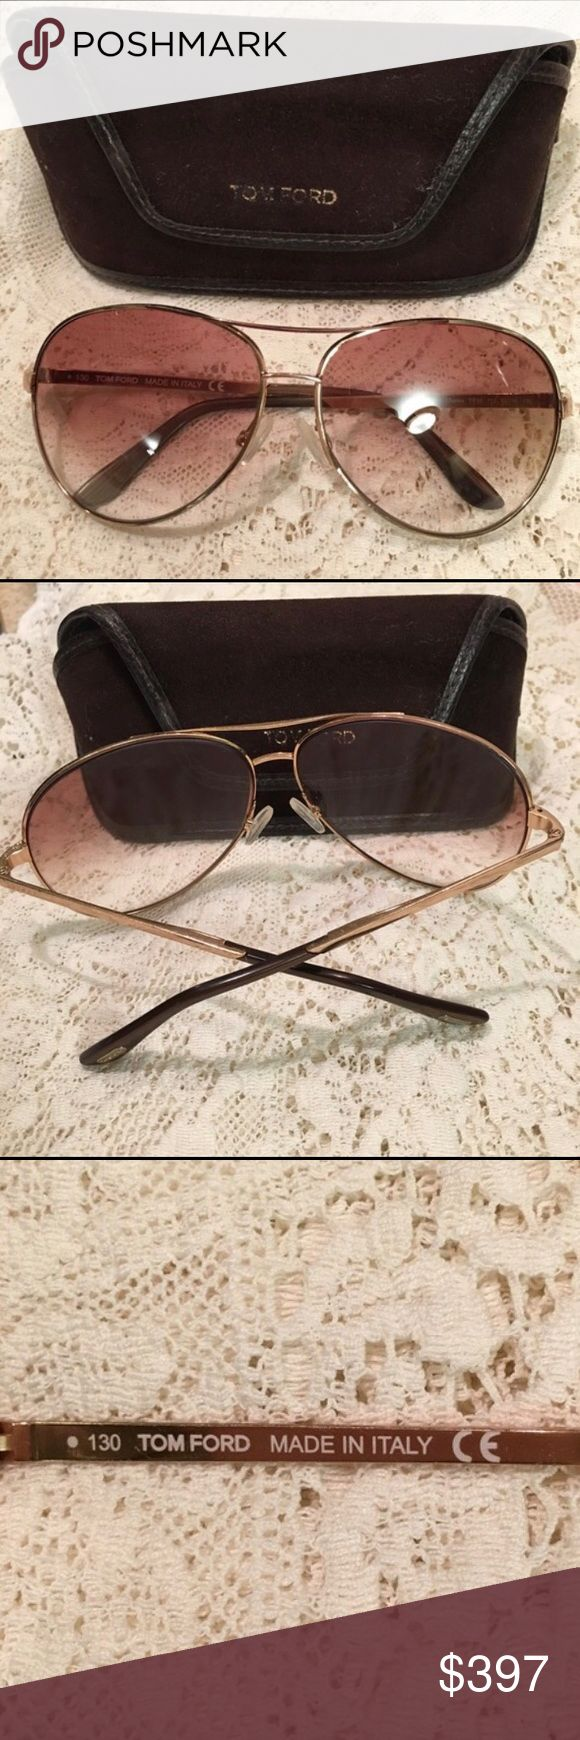 Top Ford Shades! Men's Tom Ford Shades! (Sorry for the Lace background.) Purchased at the Tom Ford store in Vegas. (Bundle 3 Listings & Save with my Discount!) Tom Ford Accessories Glasses